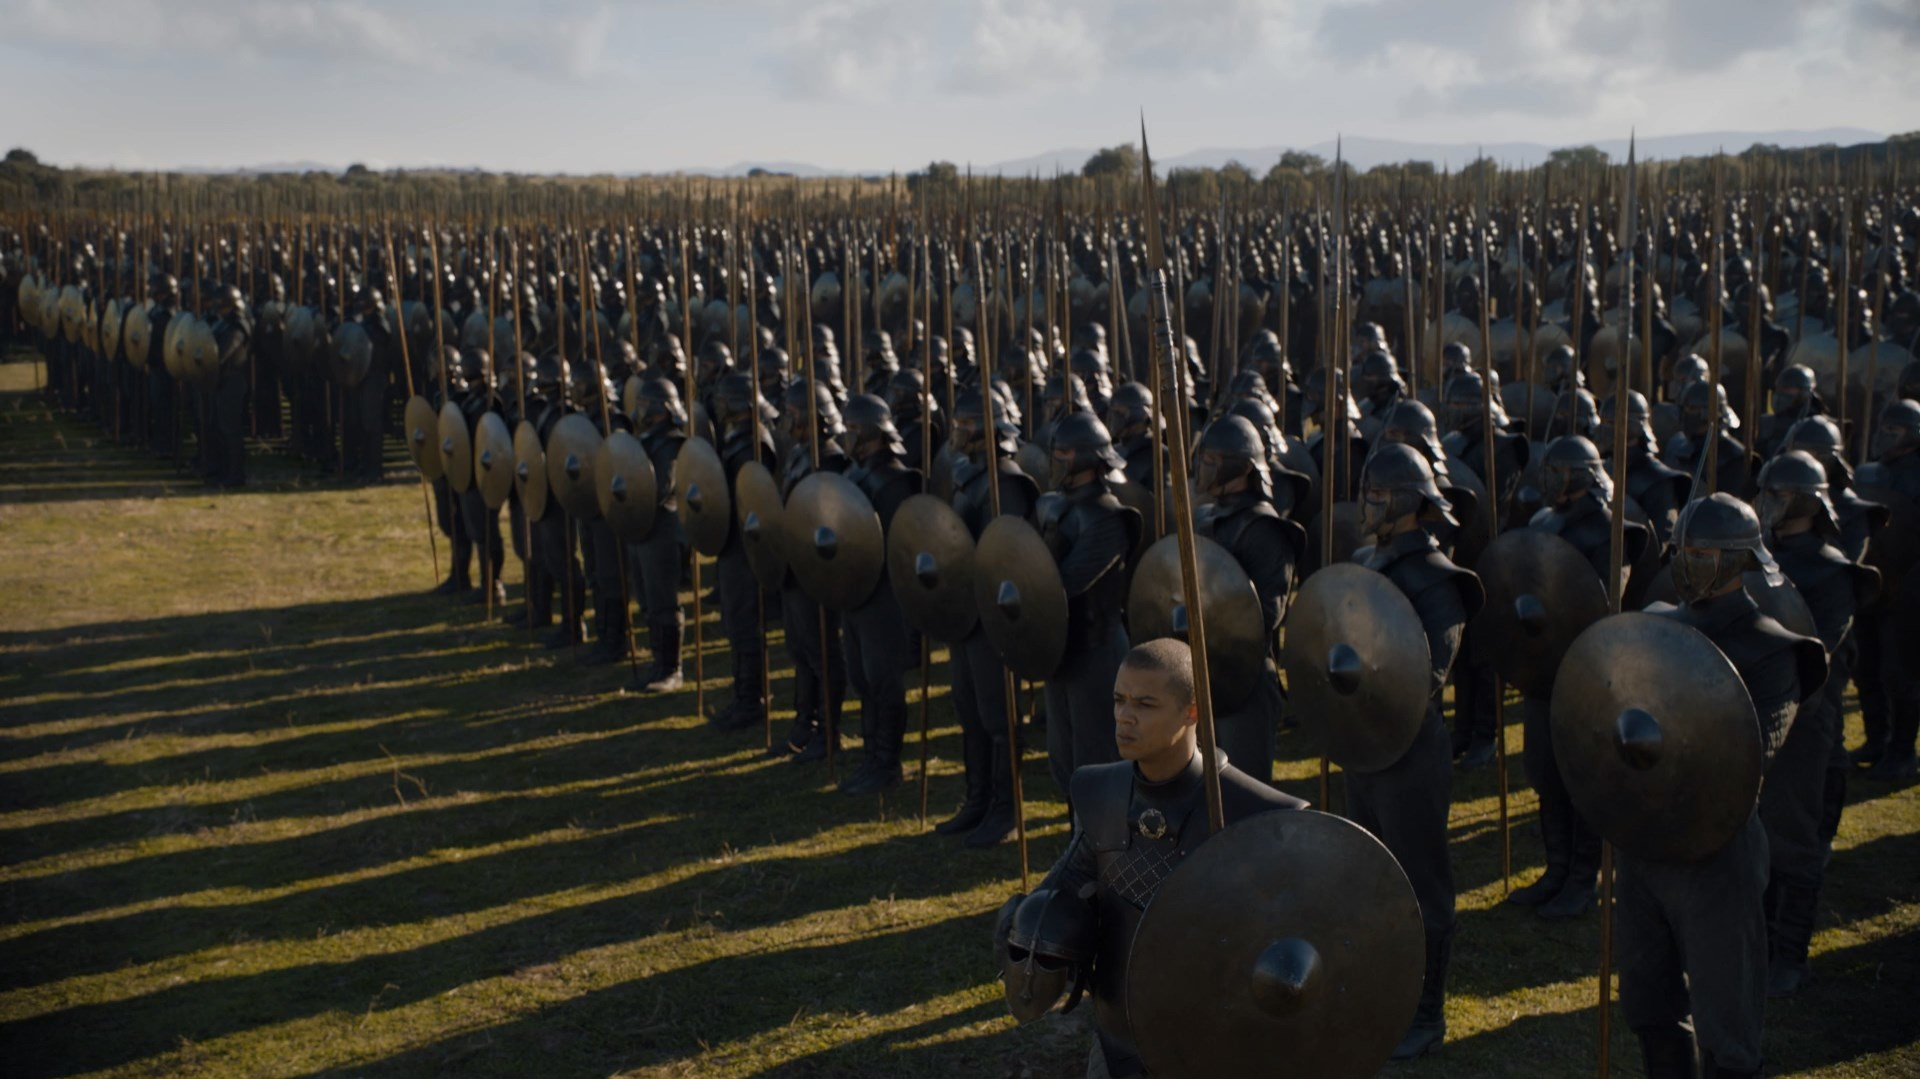 Unsullied Game Of Thrones Wiki Fandom Powered By Wikia